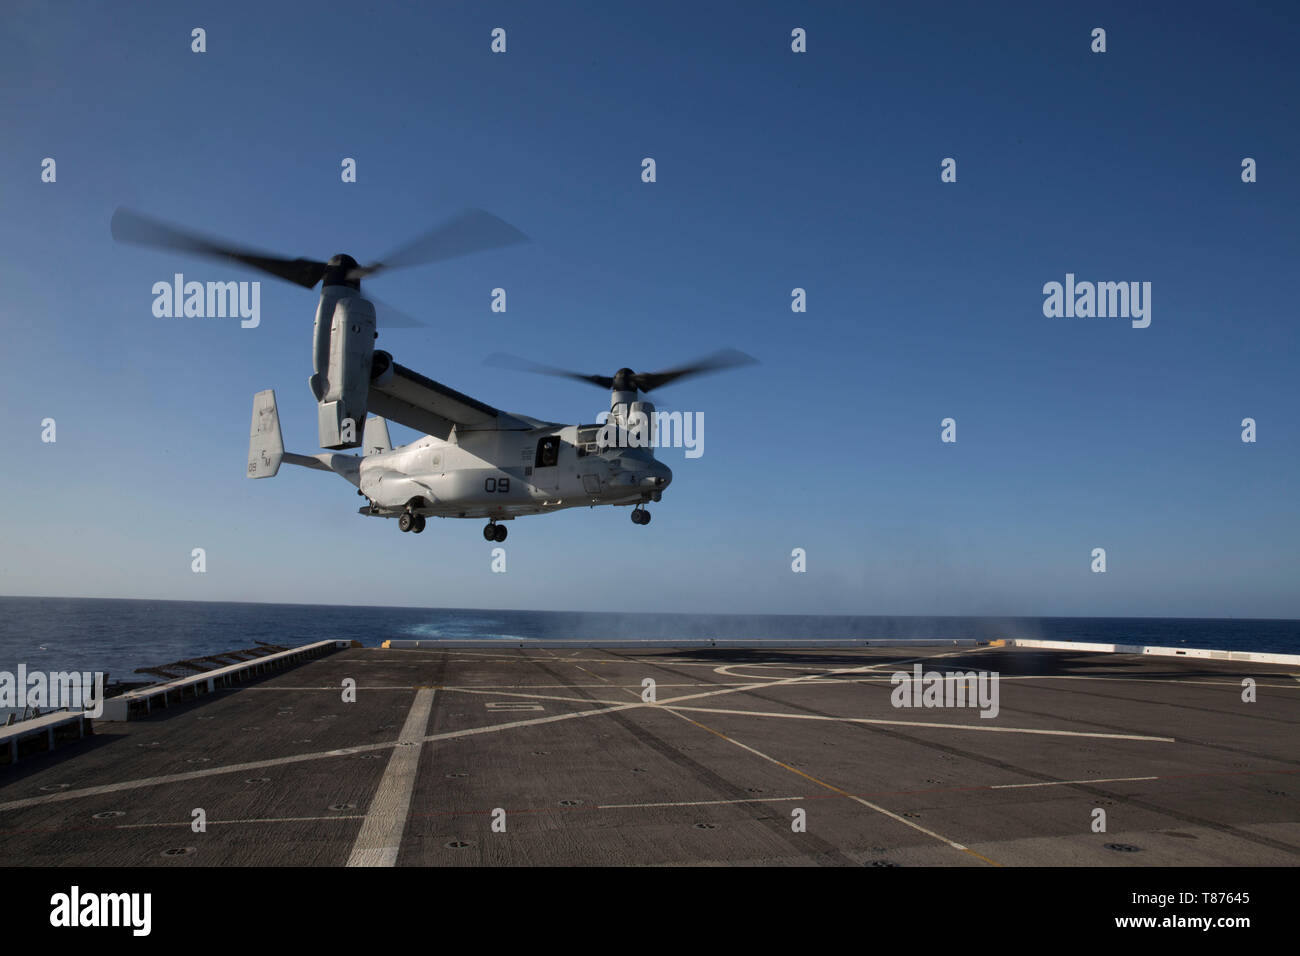 A U.S. Marine Corps MV-22B Osprey with the Special Purpose Marine Air-Ground Task Force-Crisis Response-Africa 19.2, Marine Corps Forces Europe and Africa, lands on the flight deck aboard the USS Arlington (LPD-24) in the Mediterranean Sea, May 6, 2019. SPMAGTF-CR-AF 19.2 conducted deck-landing qualifications to increase proficiency and decrease crisis-response time for contingencies. SPMAGTF-CR-AF is deployed to conduct crisis-response and theater-security operations in Africa and promote regional stability by conducting military-to-military training exercises throughout Europe and Africa. (U Stock Photo